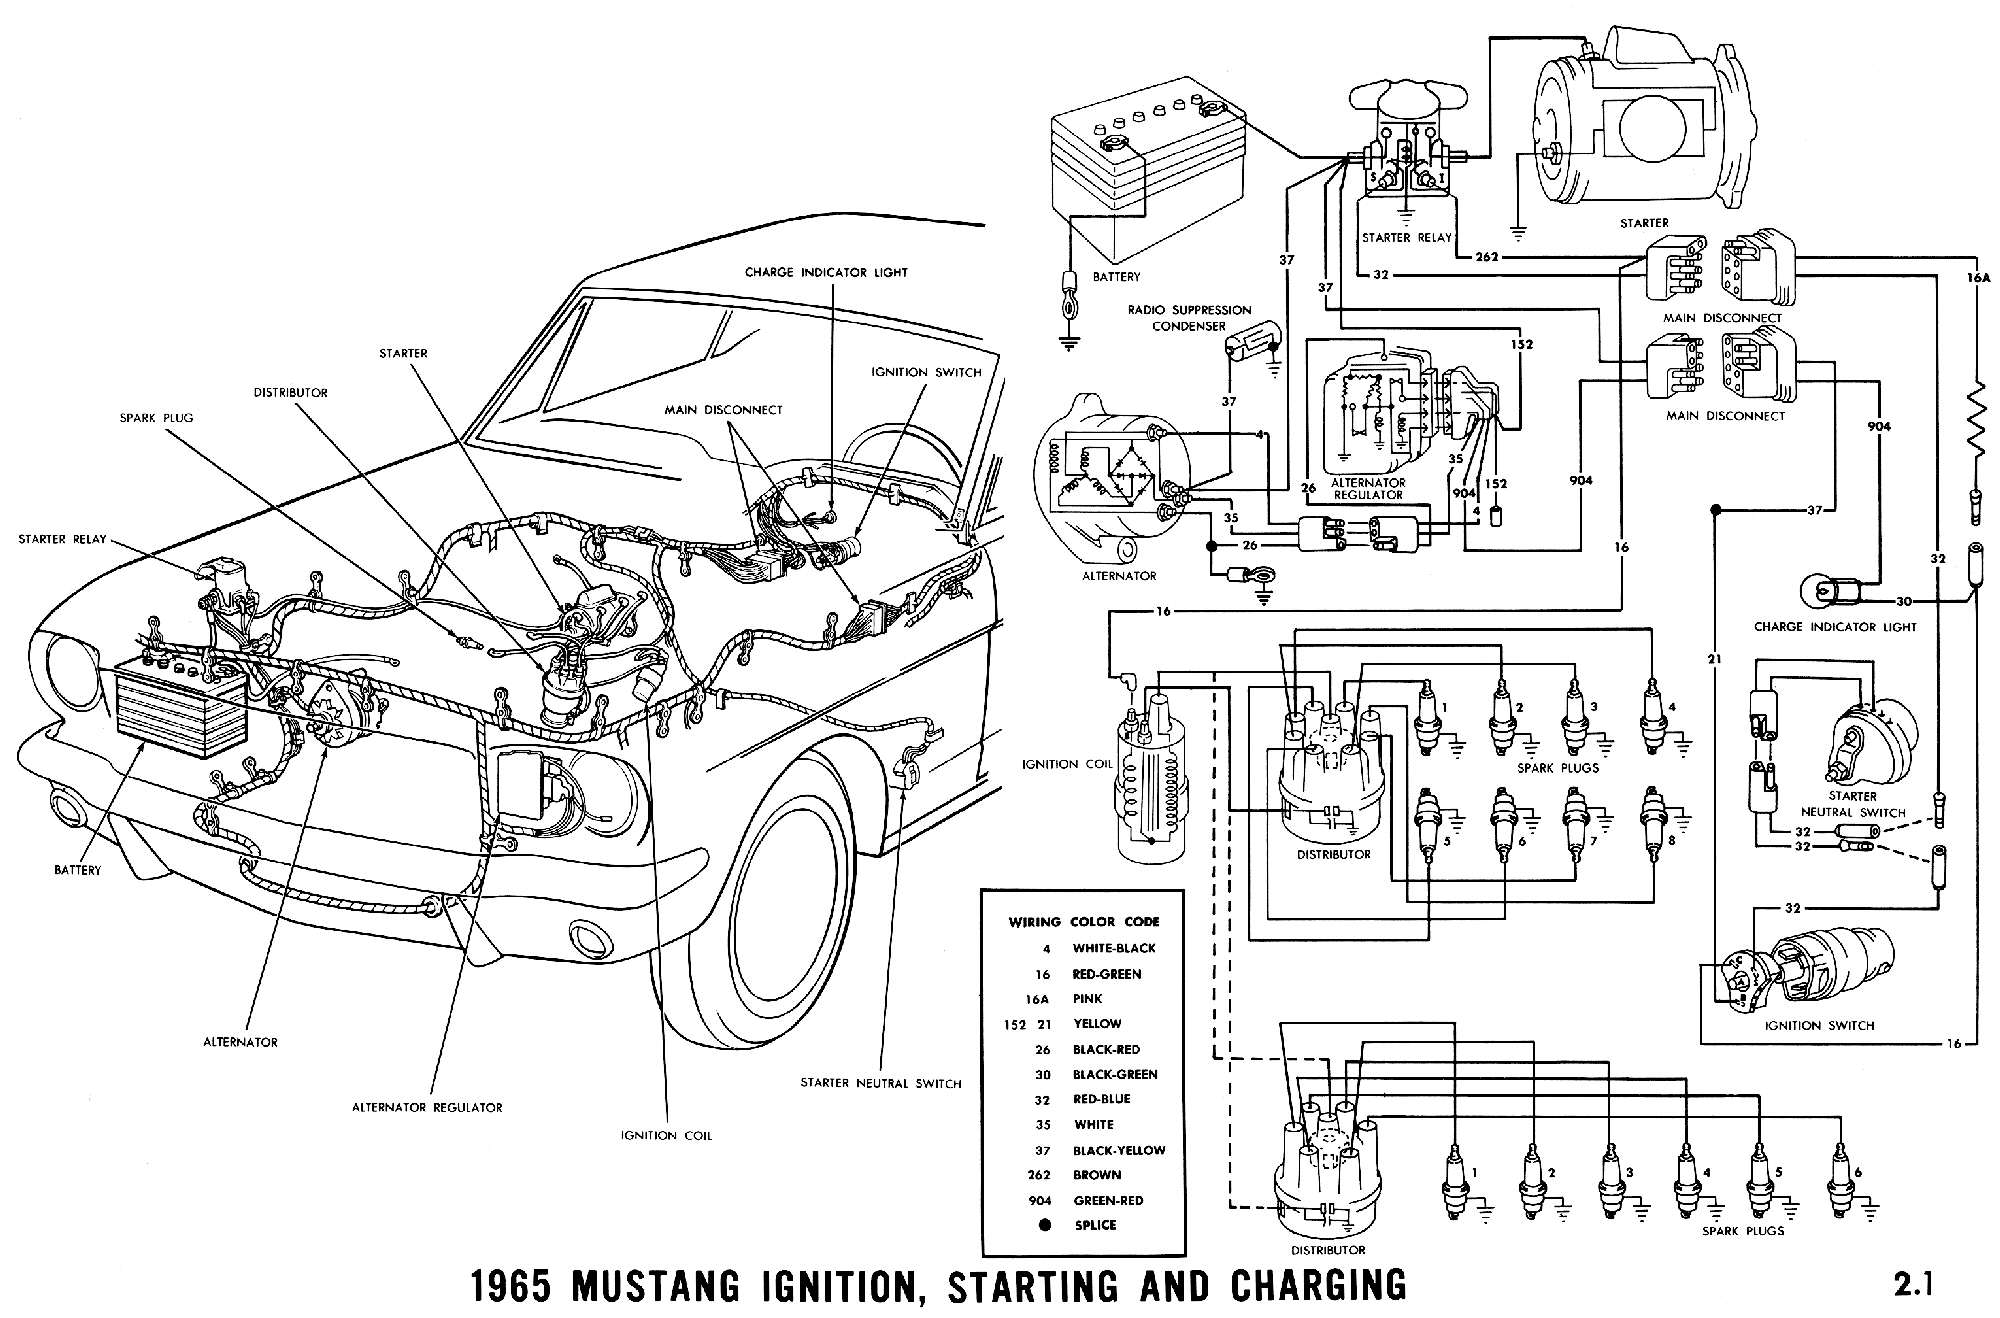 65 Mustang Voltage Regulator Wiring Reveolution Of Diagram Car 1965 Diagrams Average Joe Restoration Rh Averagejoerestoration Com